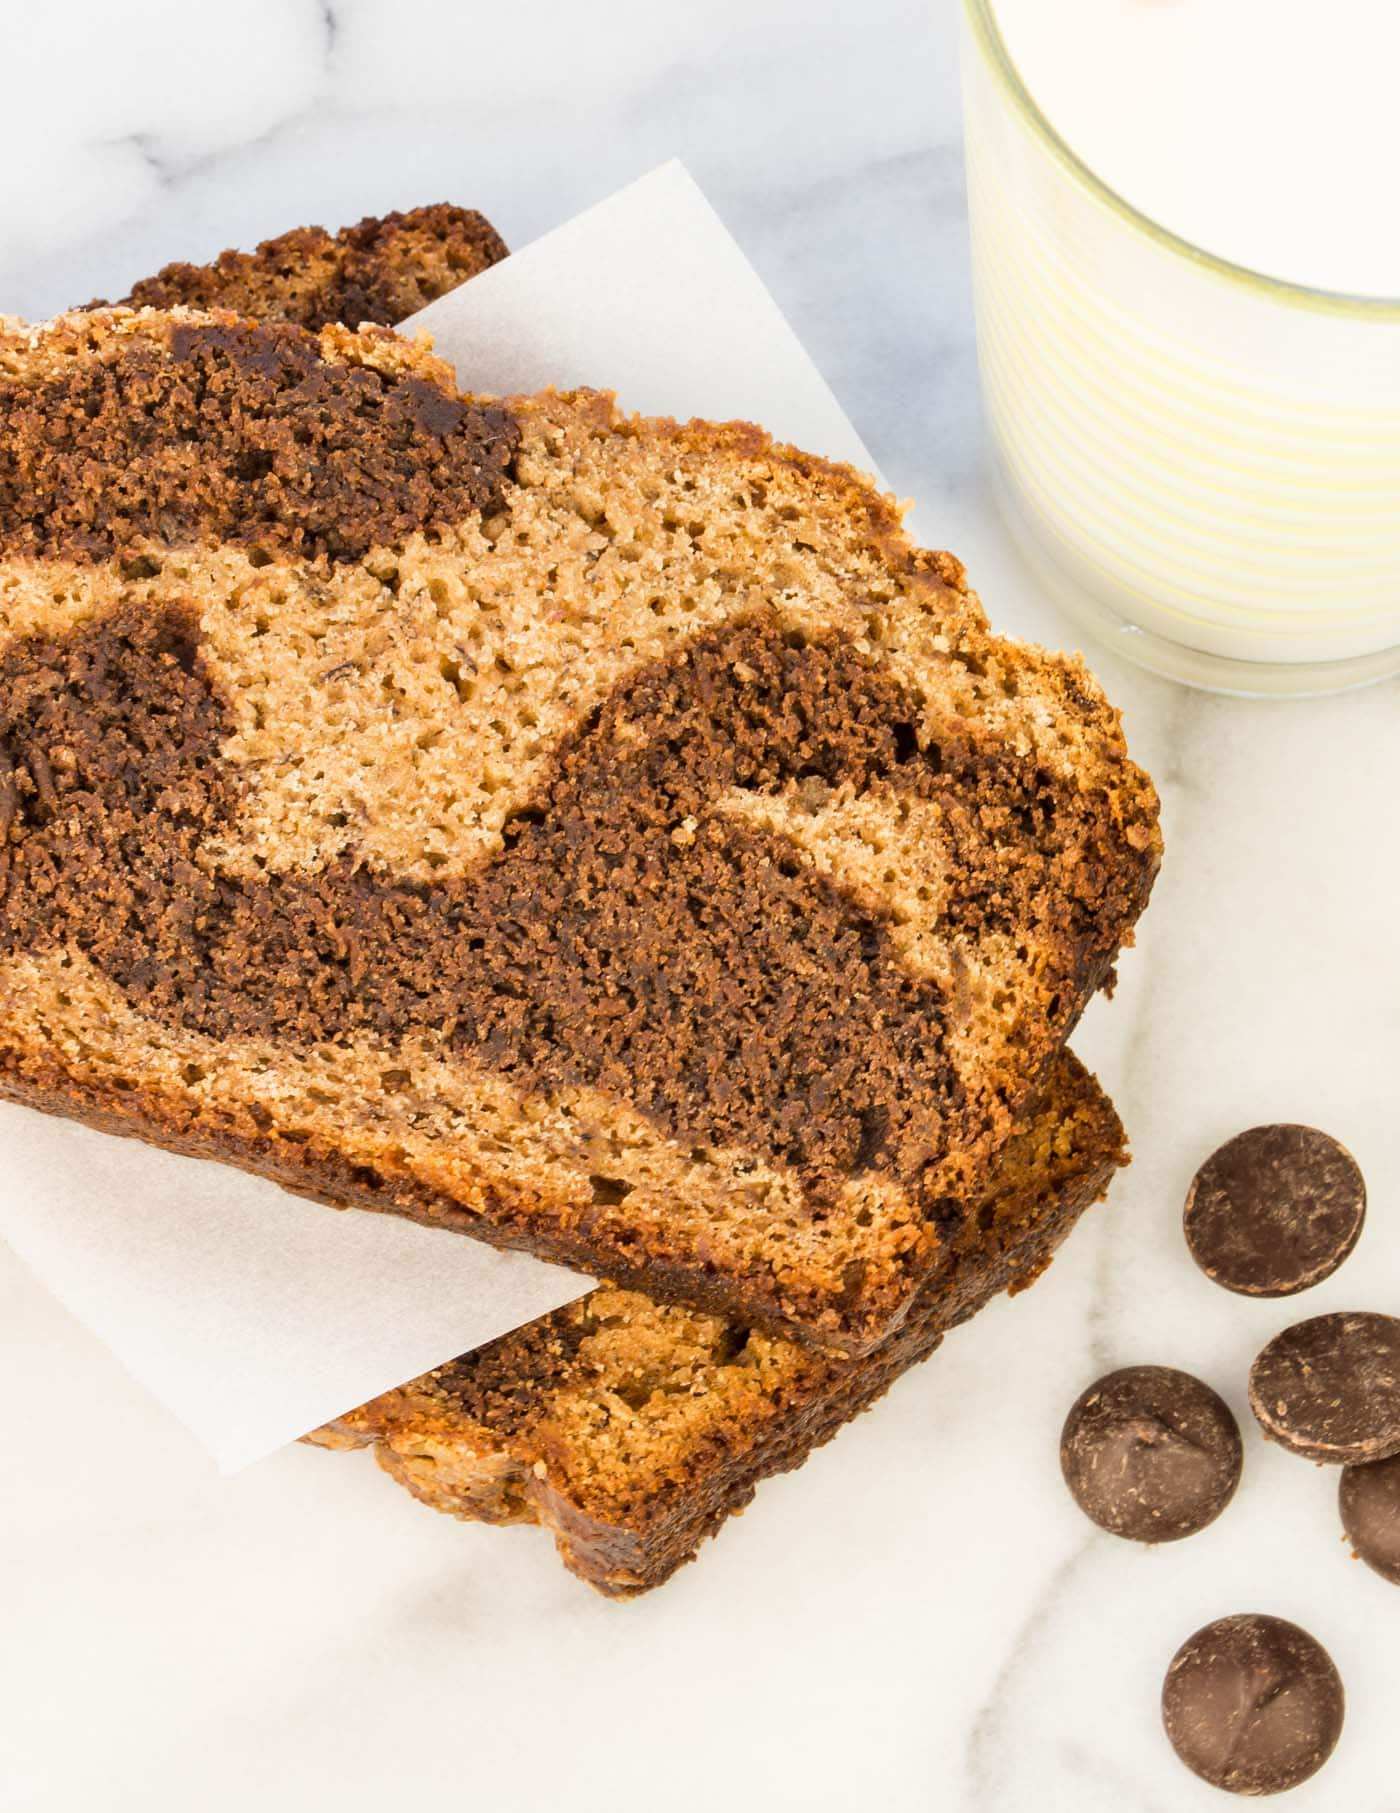 Got a comfort food craving? This recipe for Chocolate Marbled Banana Bread hits the mark! Don't forget to freeze an extra loaf for busy mornings!